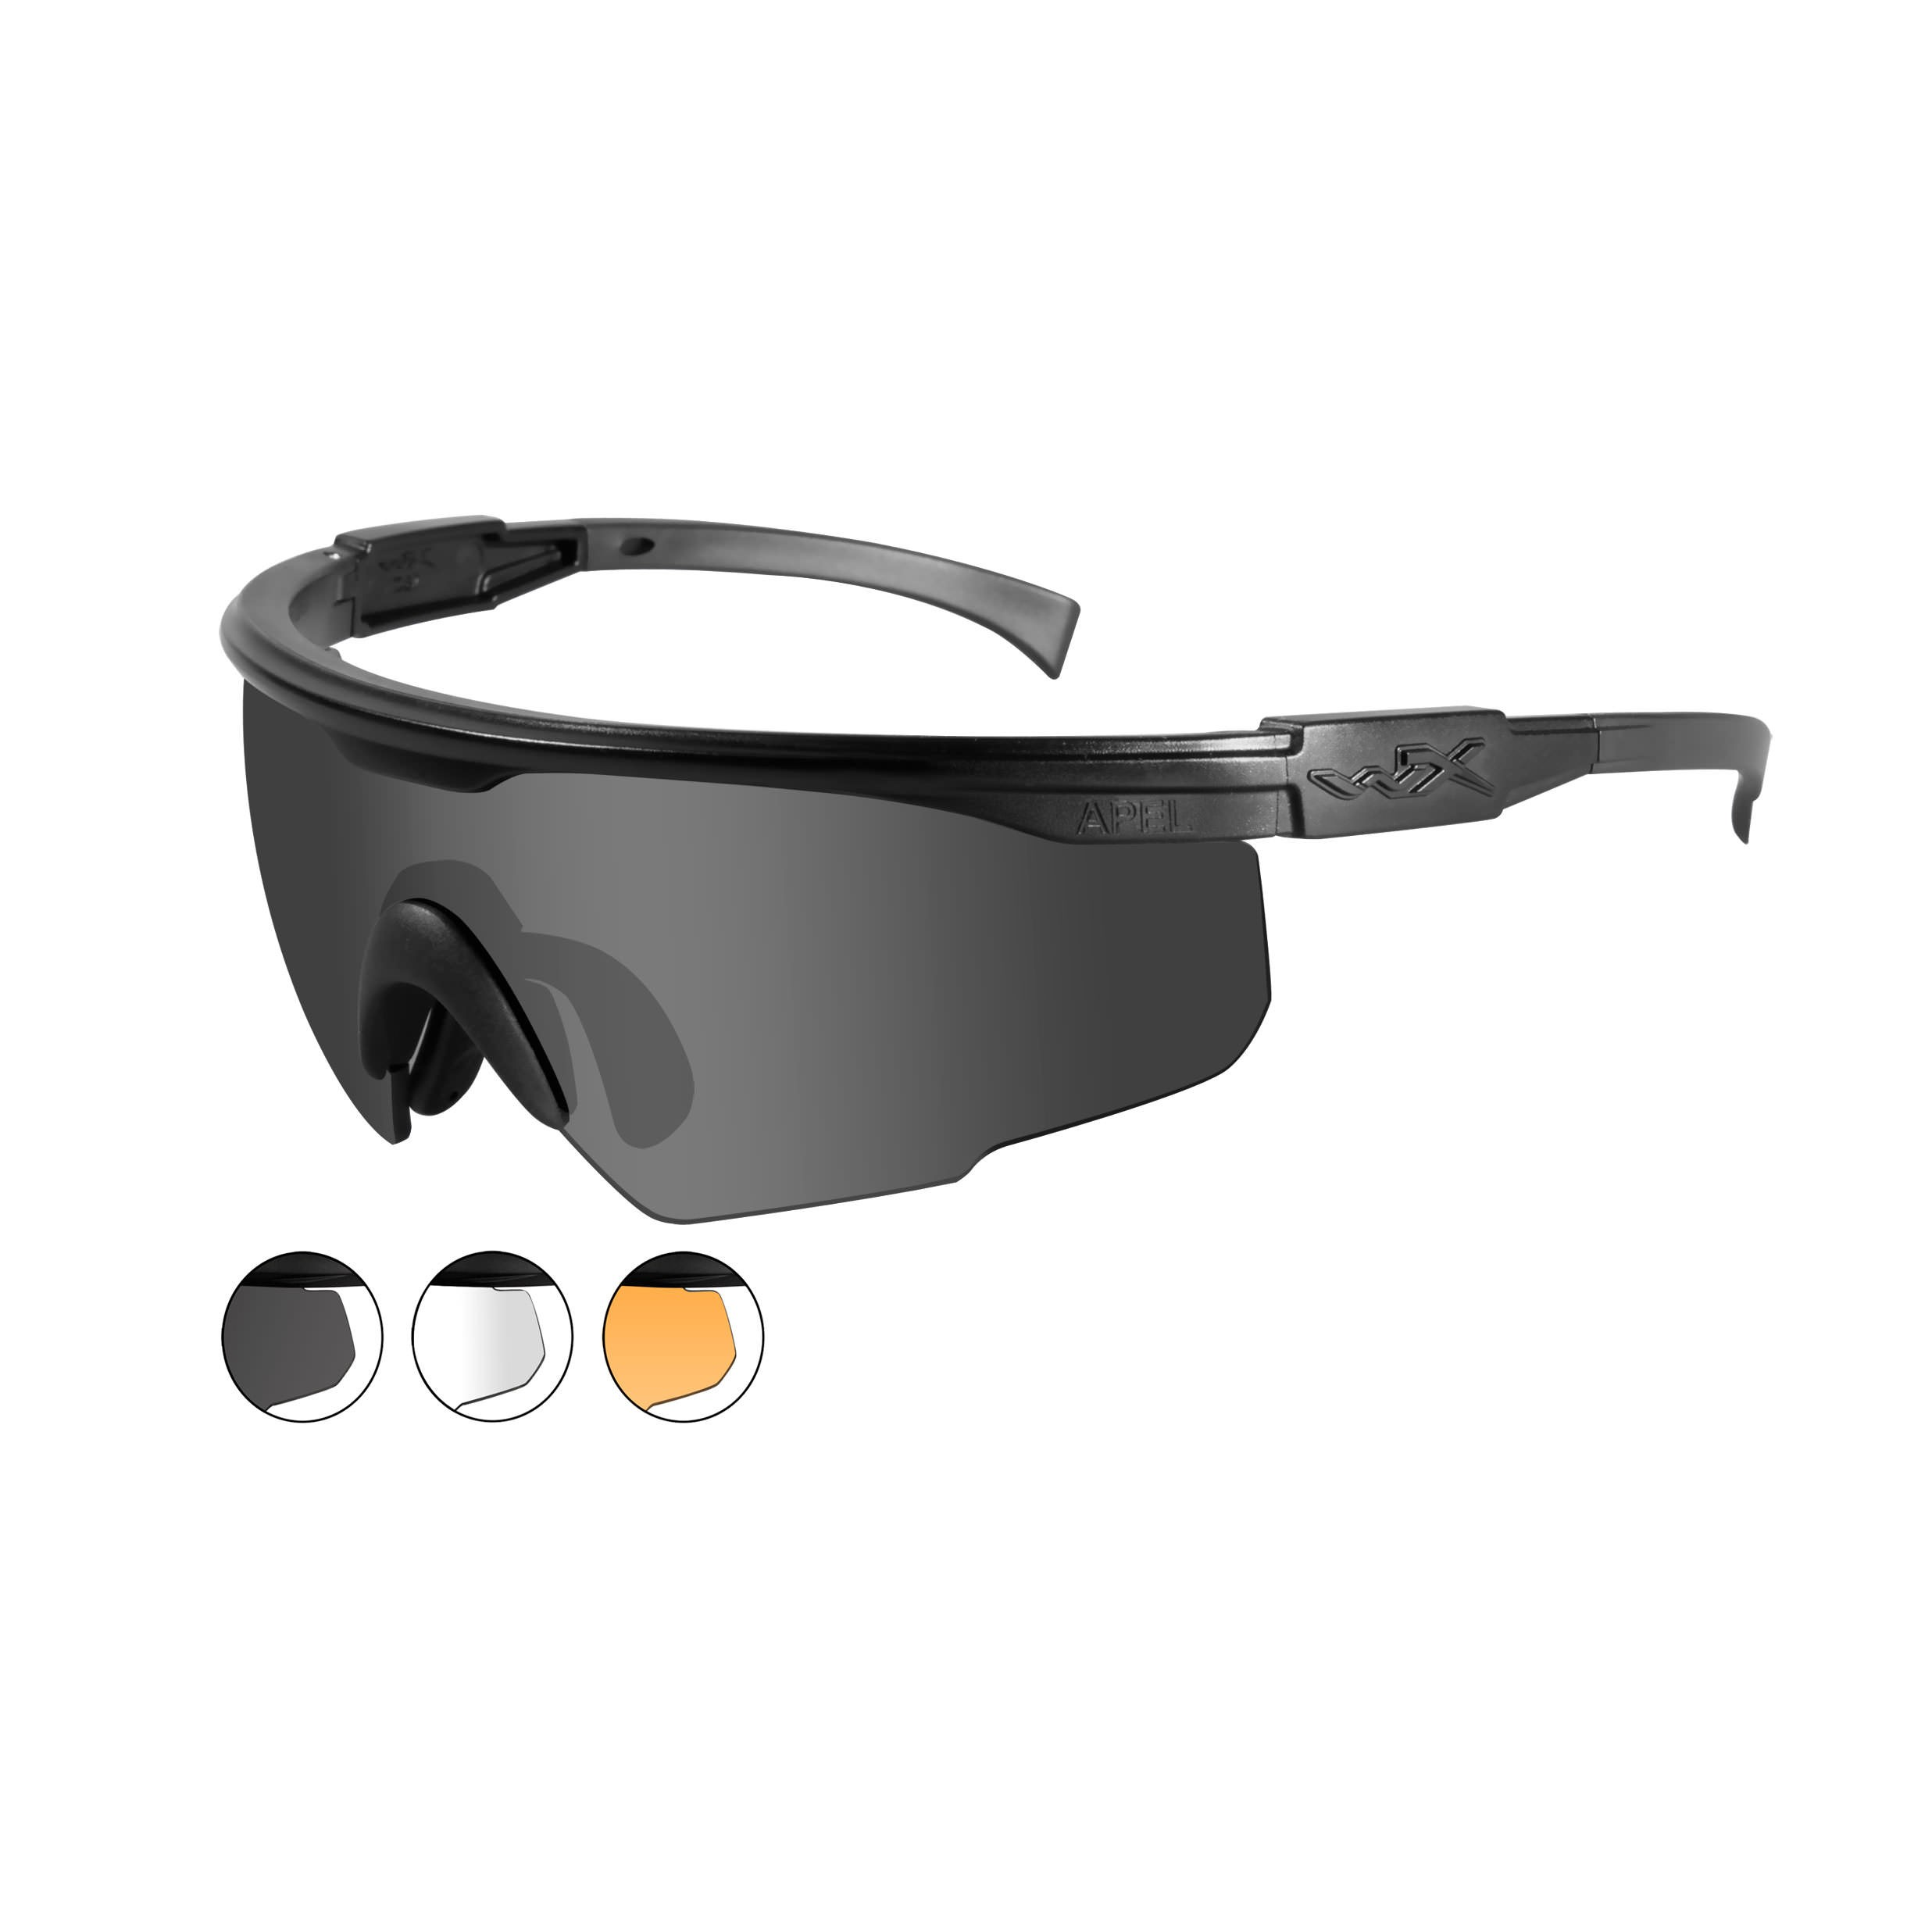 Wiley X PT-1 Interchangeable Sunglasses - 3 Lens System